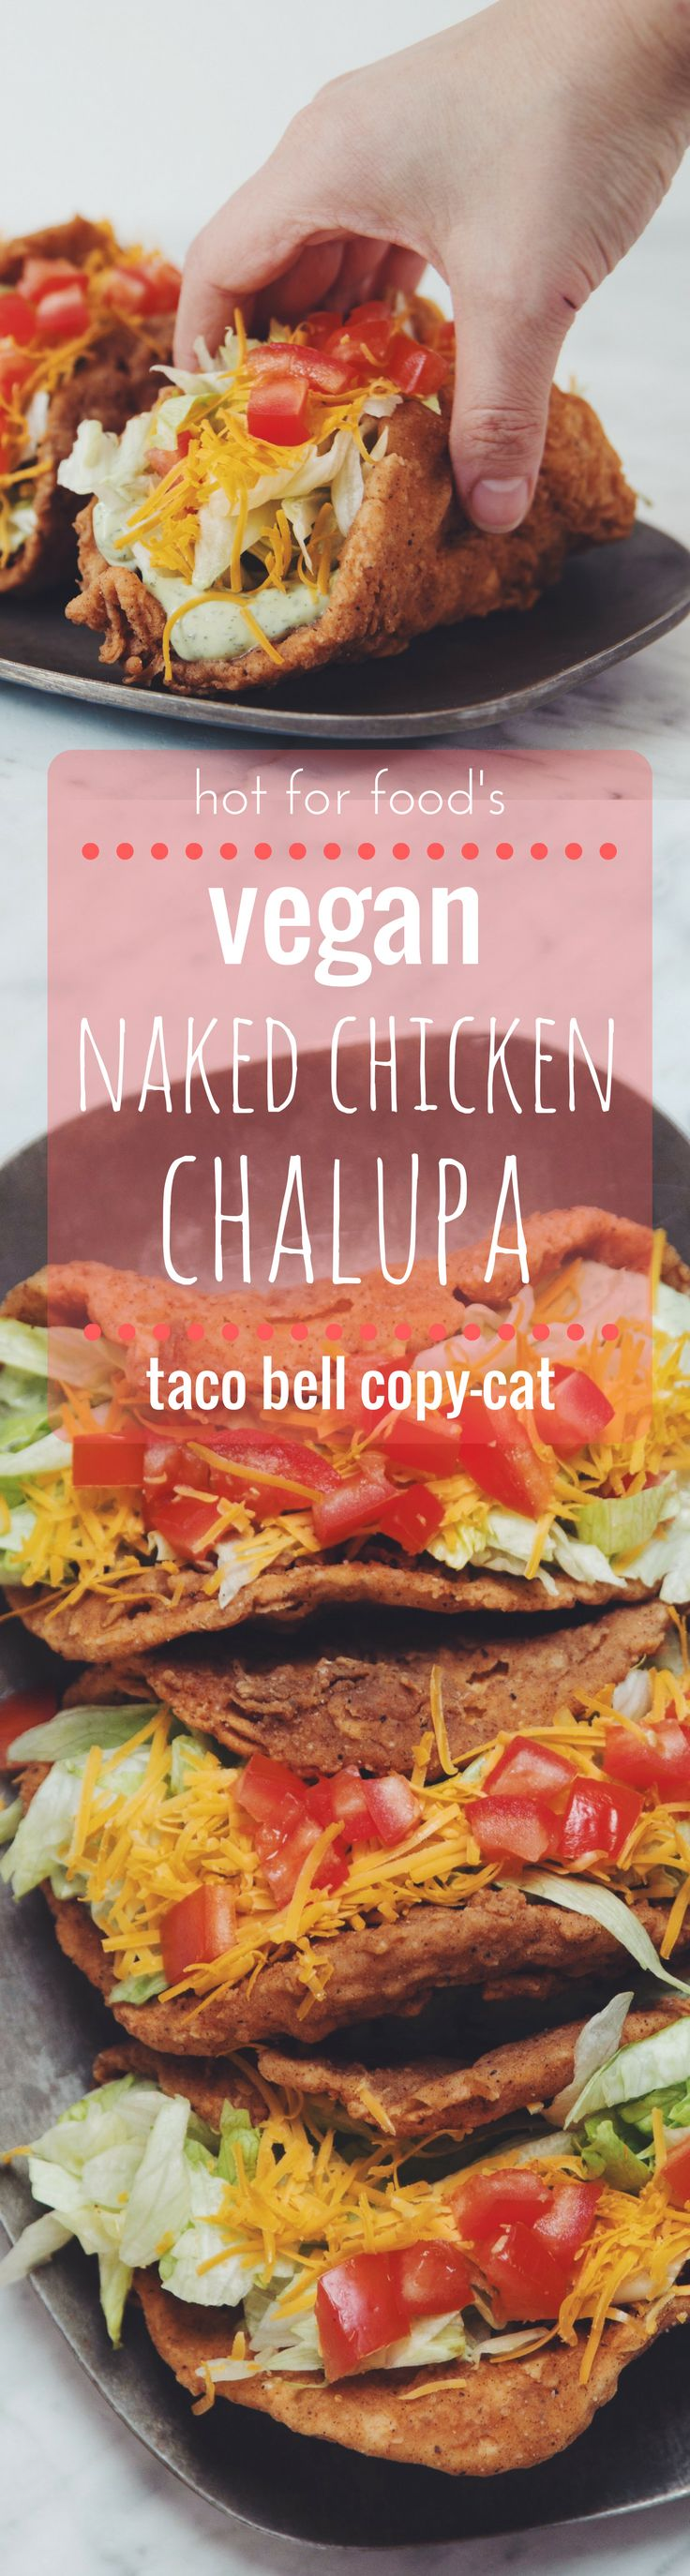 the vegan naked chicken chalupa ** TACO BELL COPY CAT ** | RECIPE by hot for food